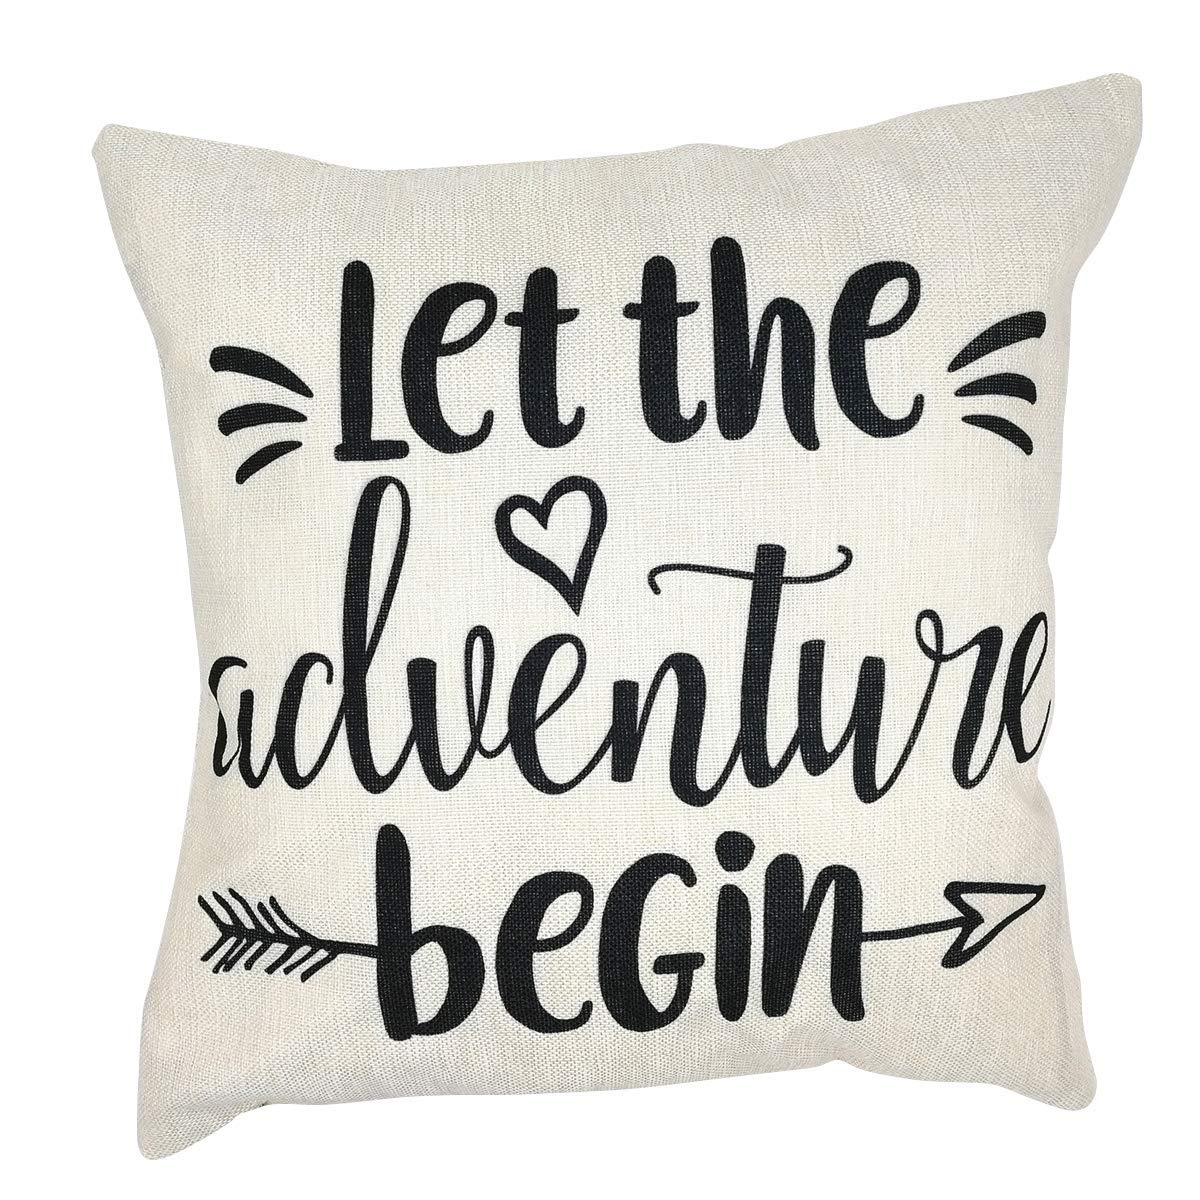 Arundeal 18 x 18 Inch Let The Adventure Begin Cotton Linen Square Throw Pillow Cases Cushion Cover